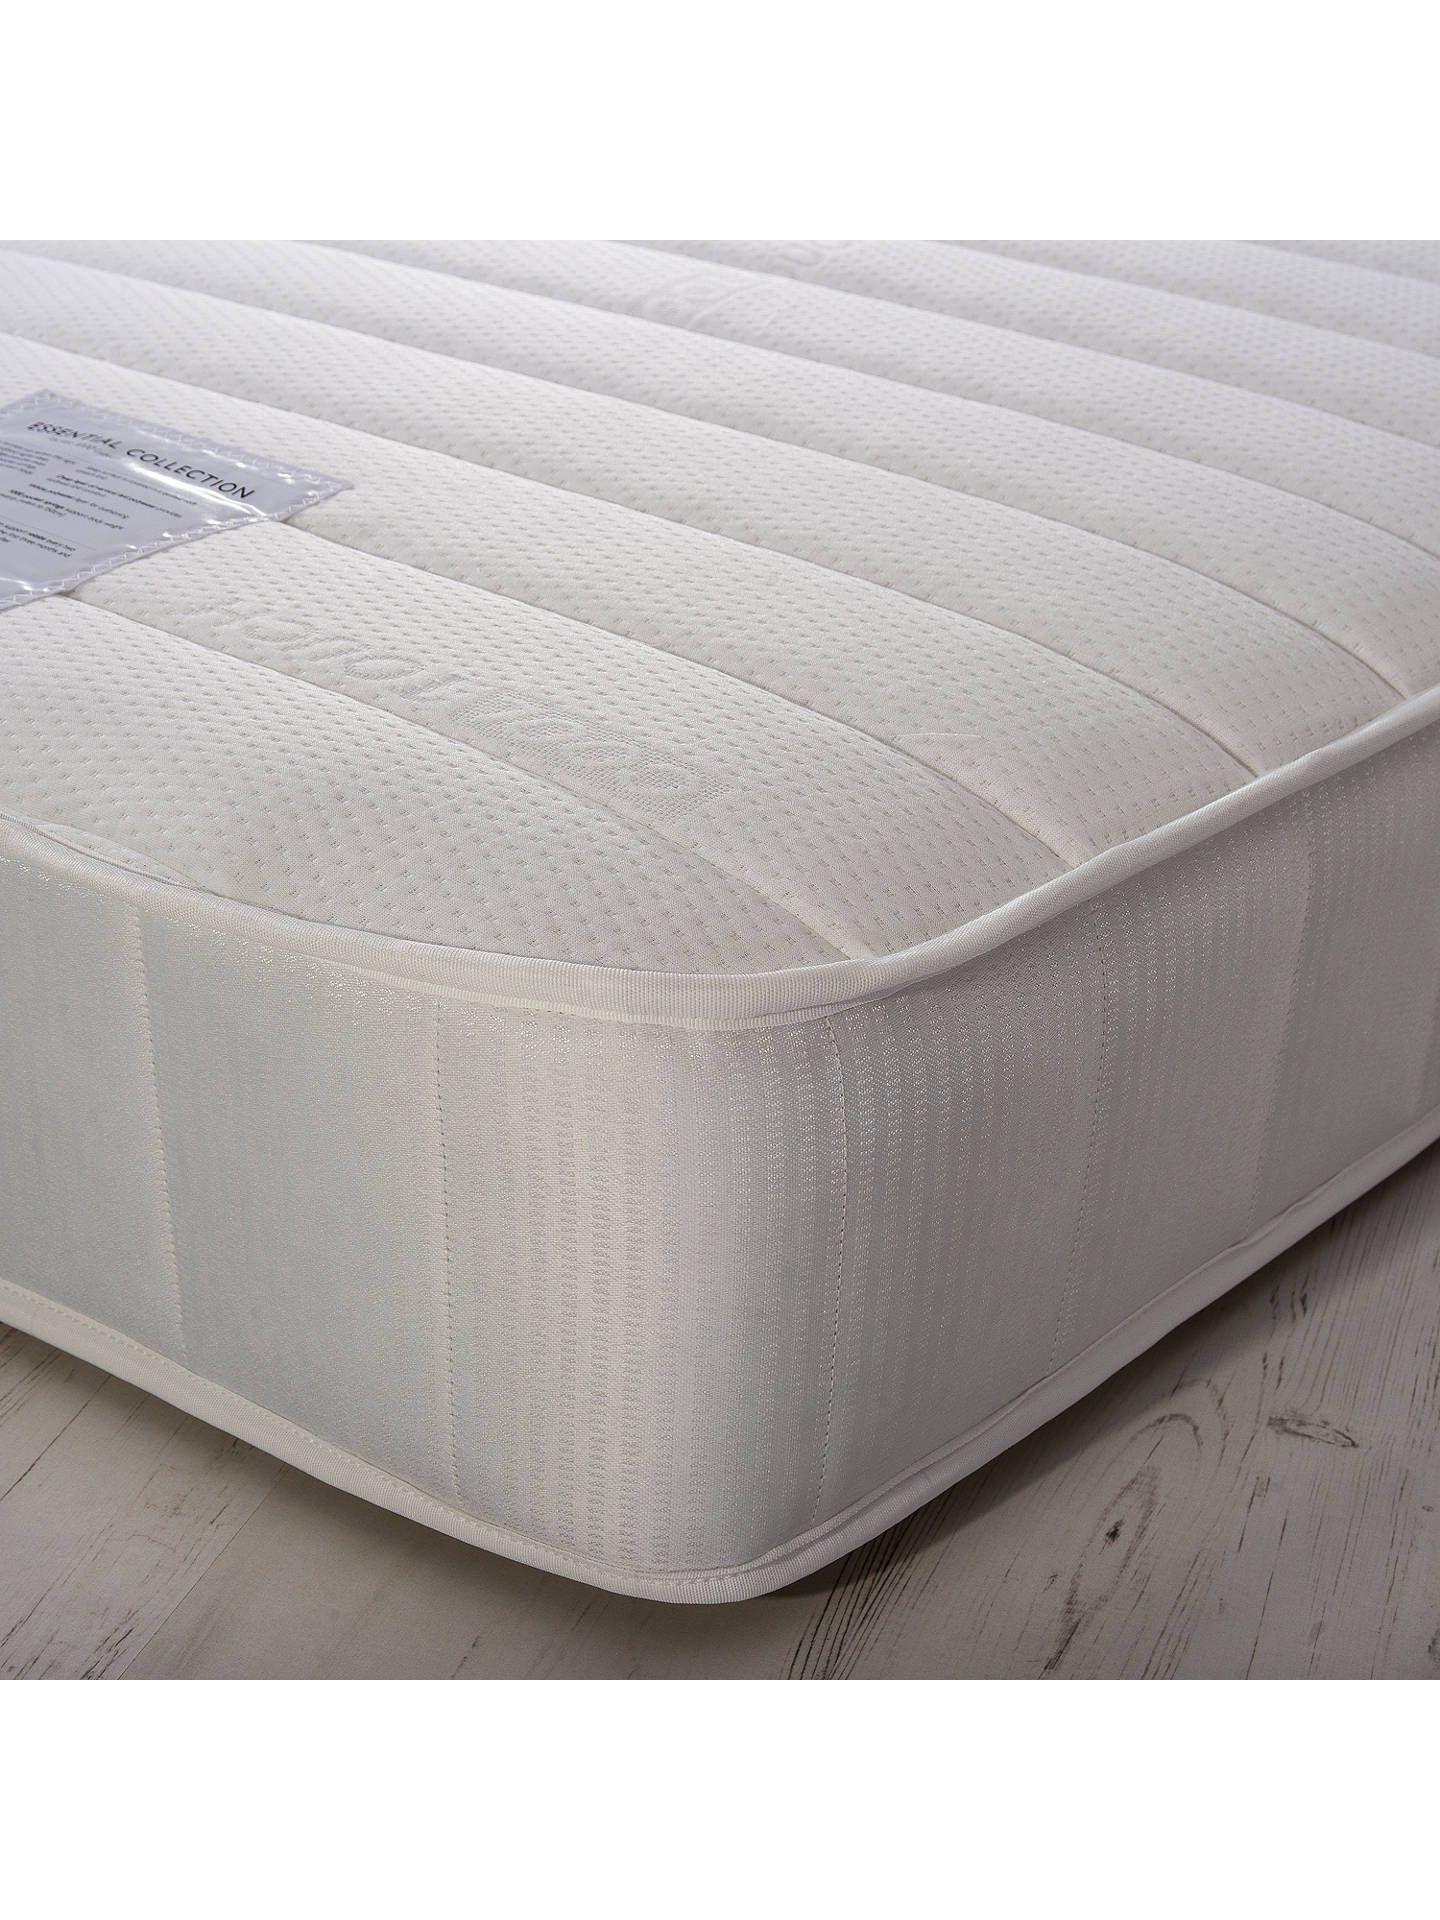 Buy John Lewis & Partners Essentials Collection Pocket 1000 Luxury, Medium Tension, Pocket Spring Mattress, Single Online at johnlewis.com